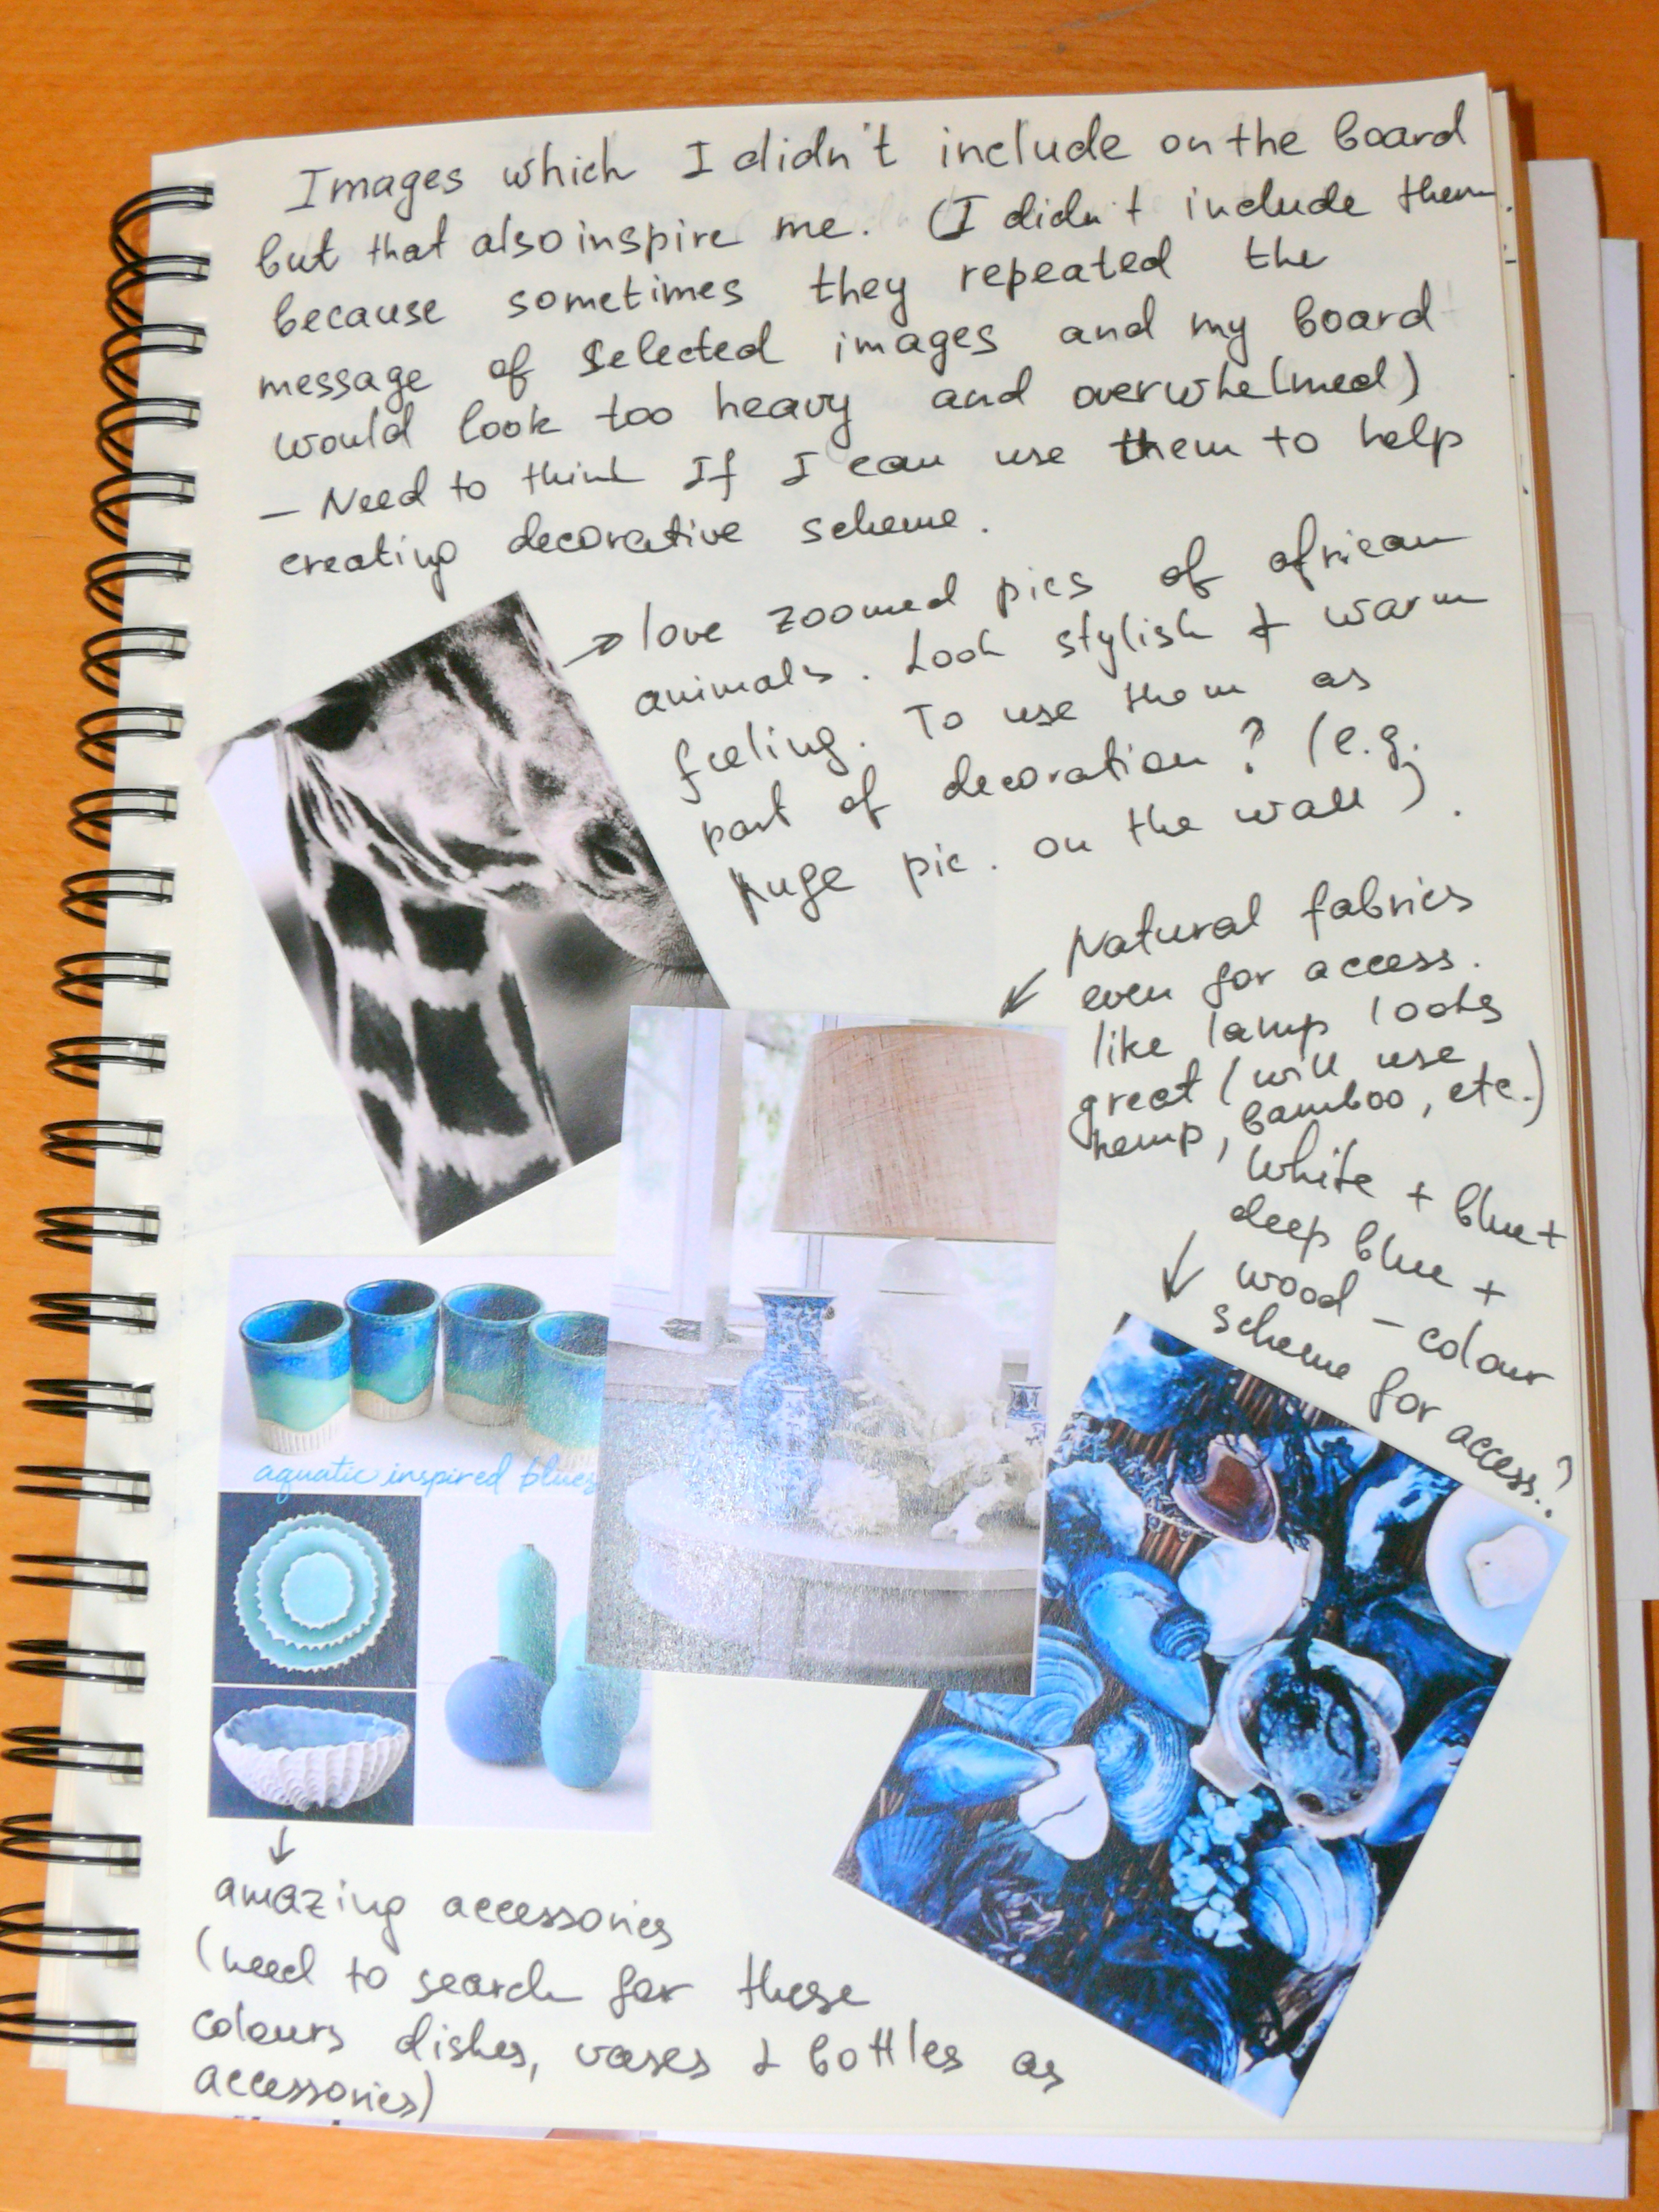 How to scrapbook a journal